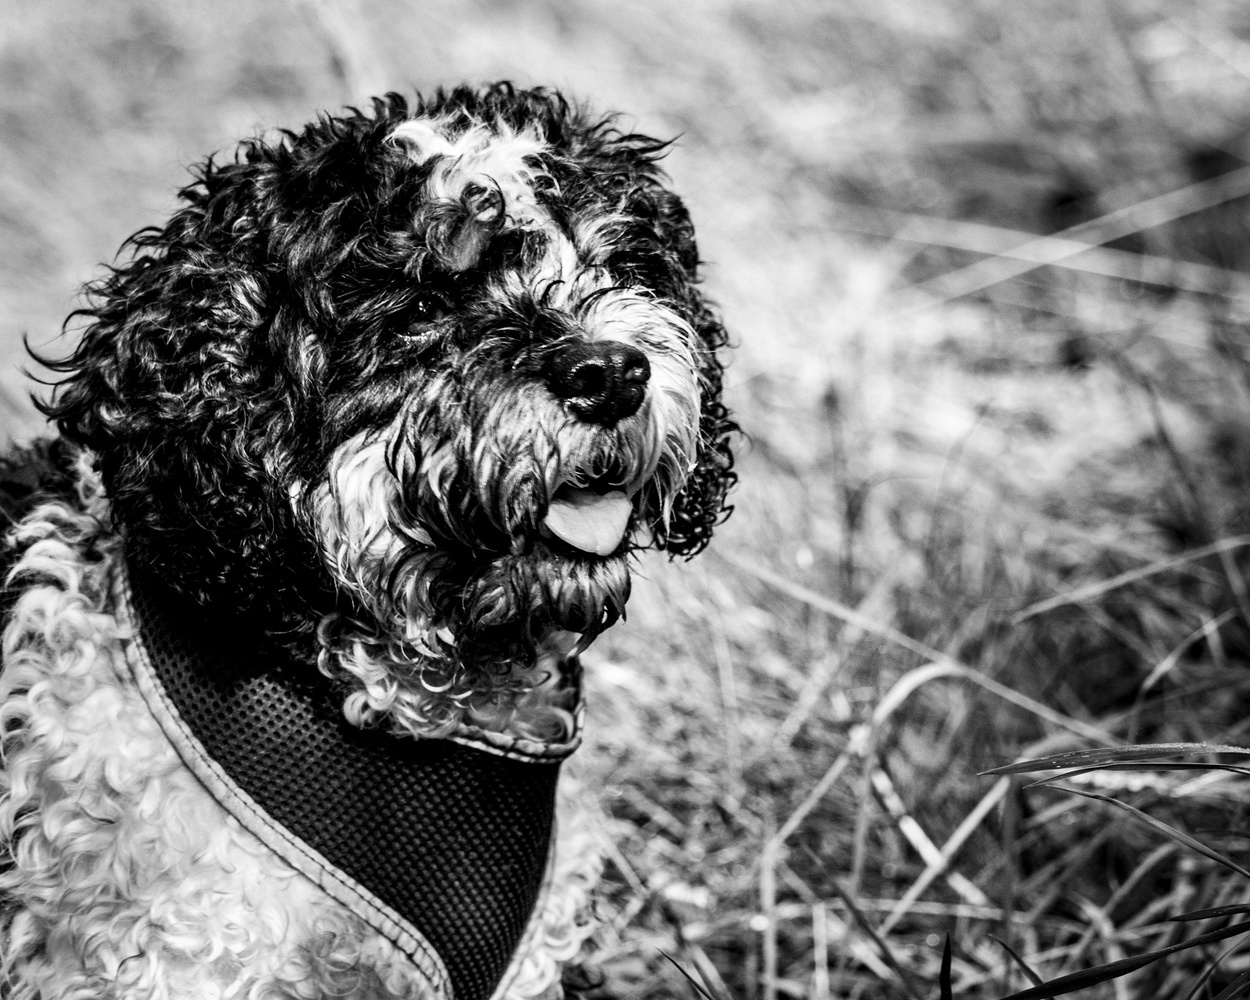 Hamish by Mike Young